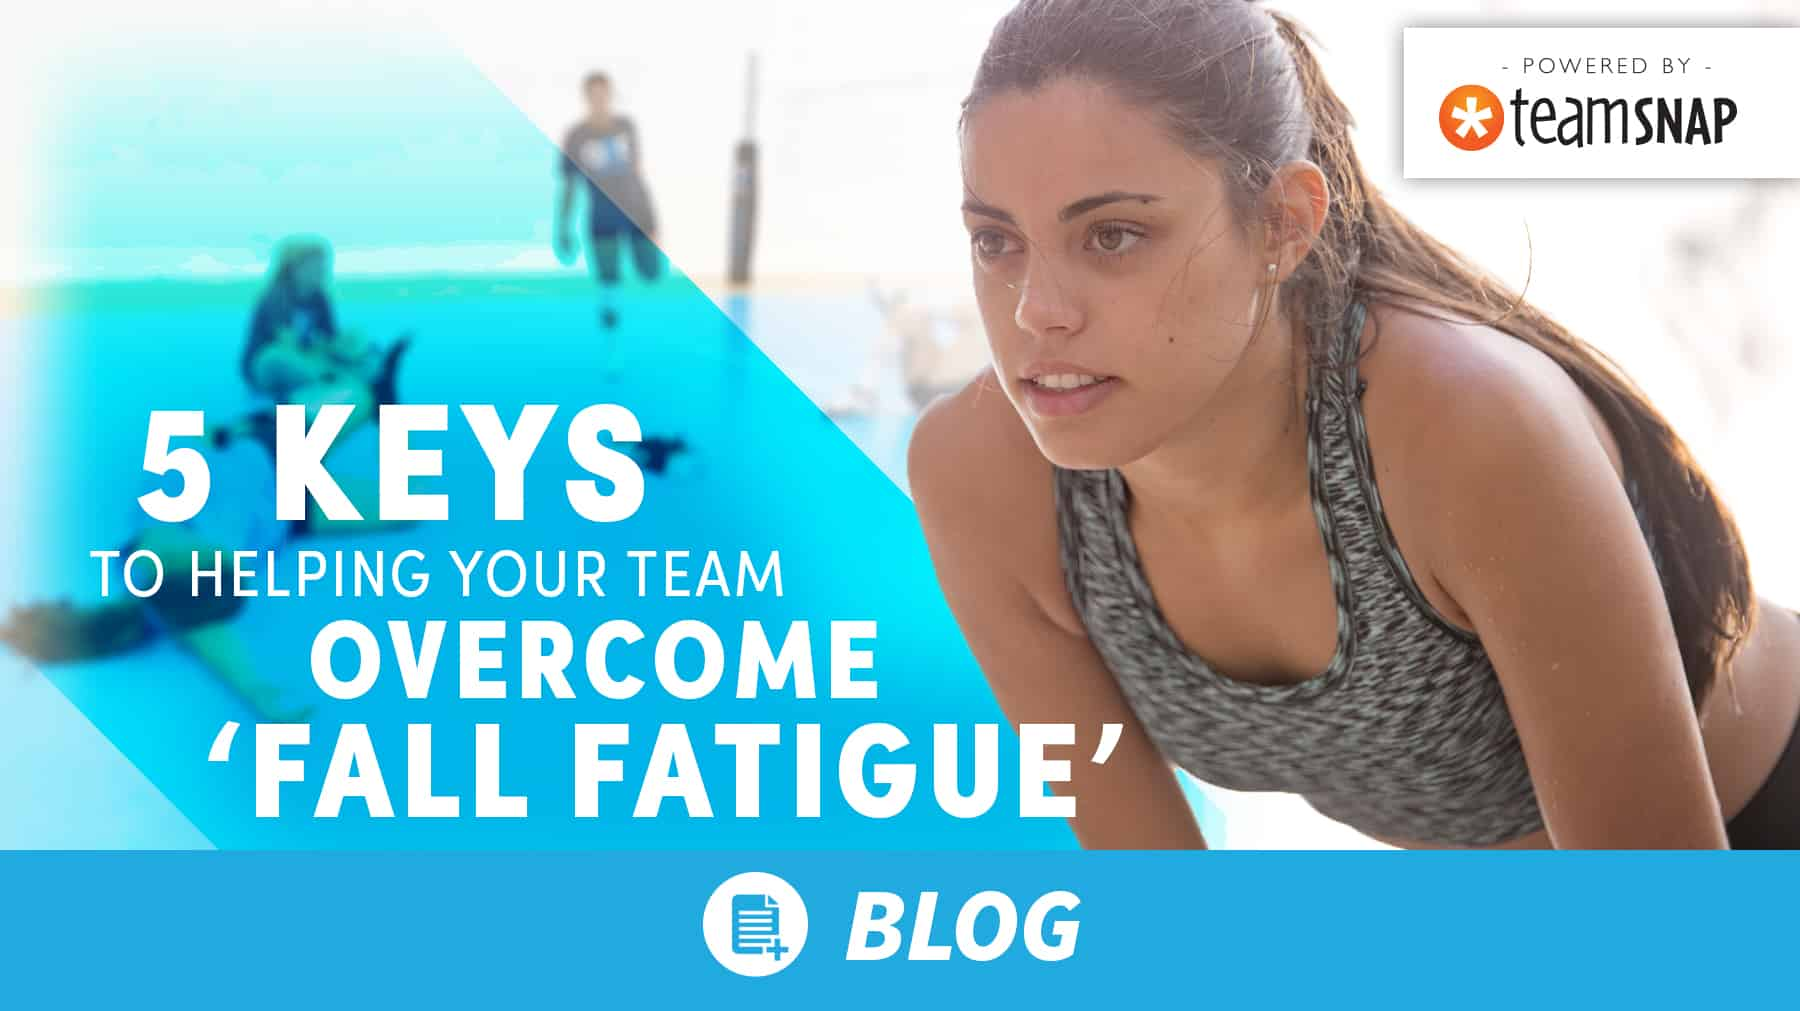 5 keys to helping your team overcome Fall Fatigue